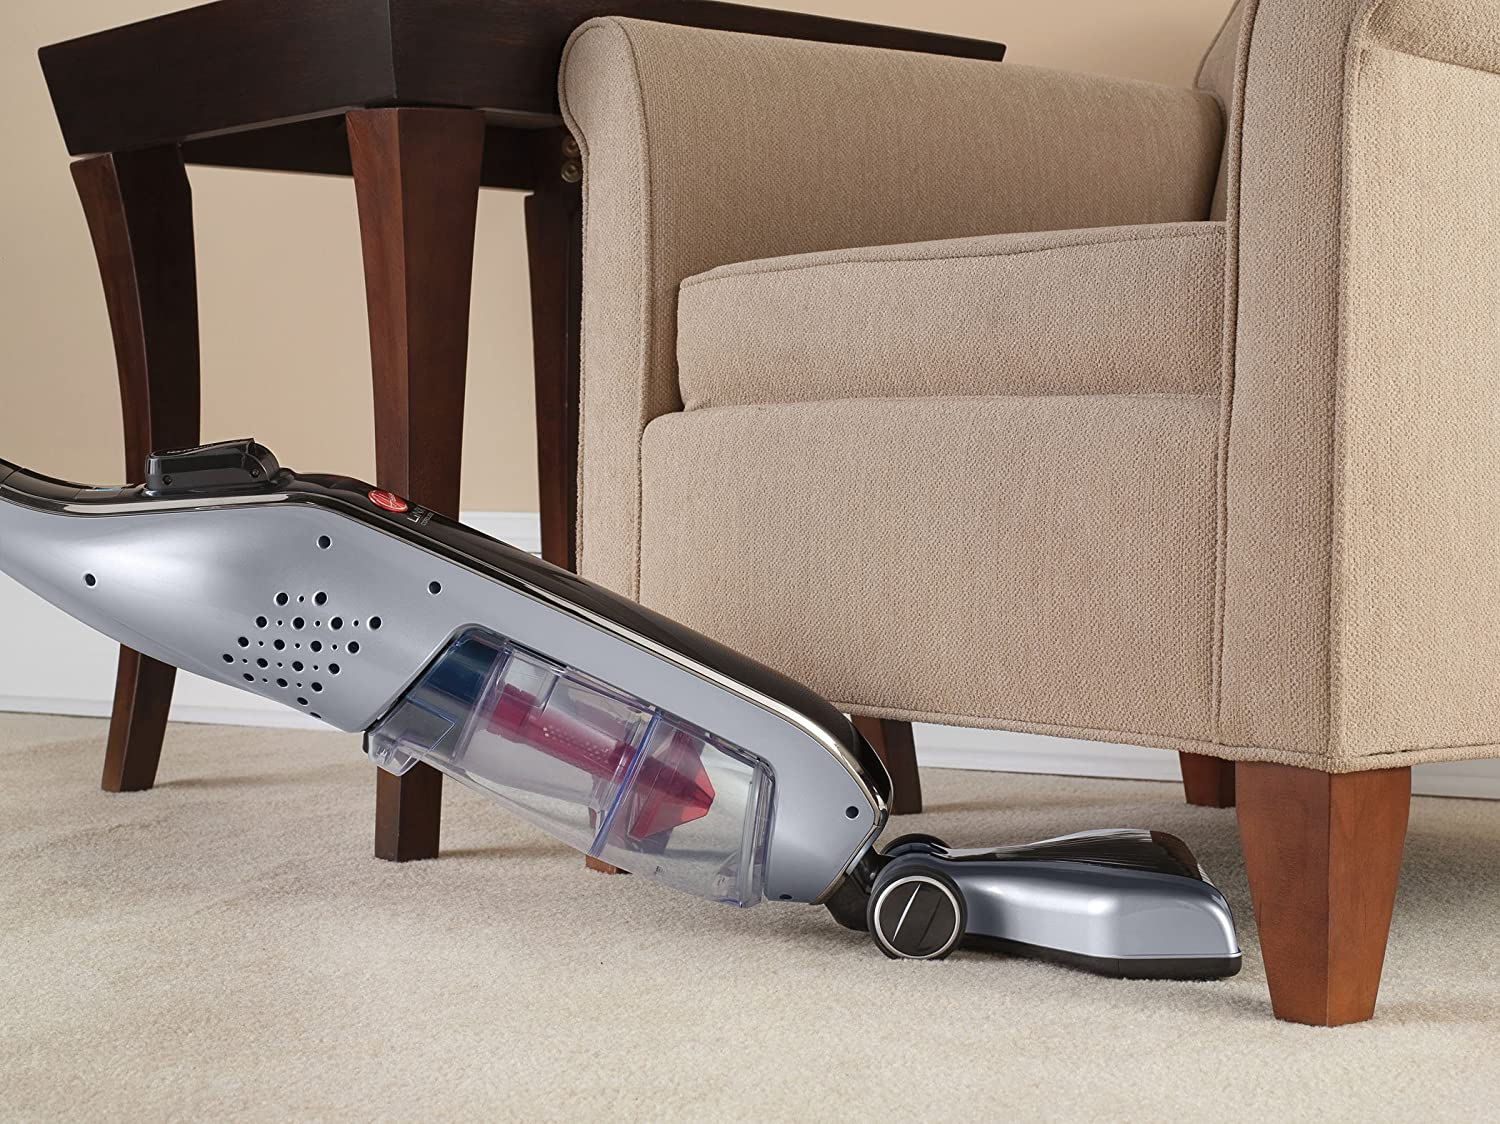 oover Linx Cordless Stick Vacuum Cleaner Reviews